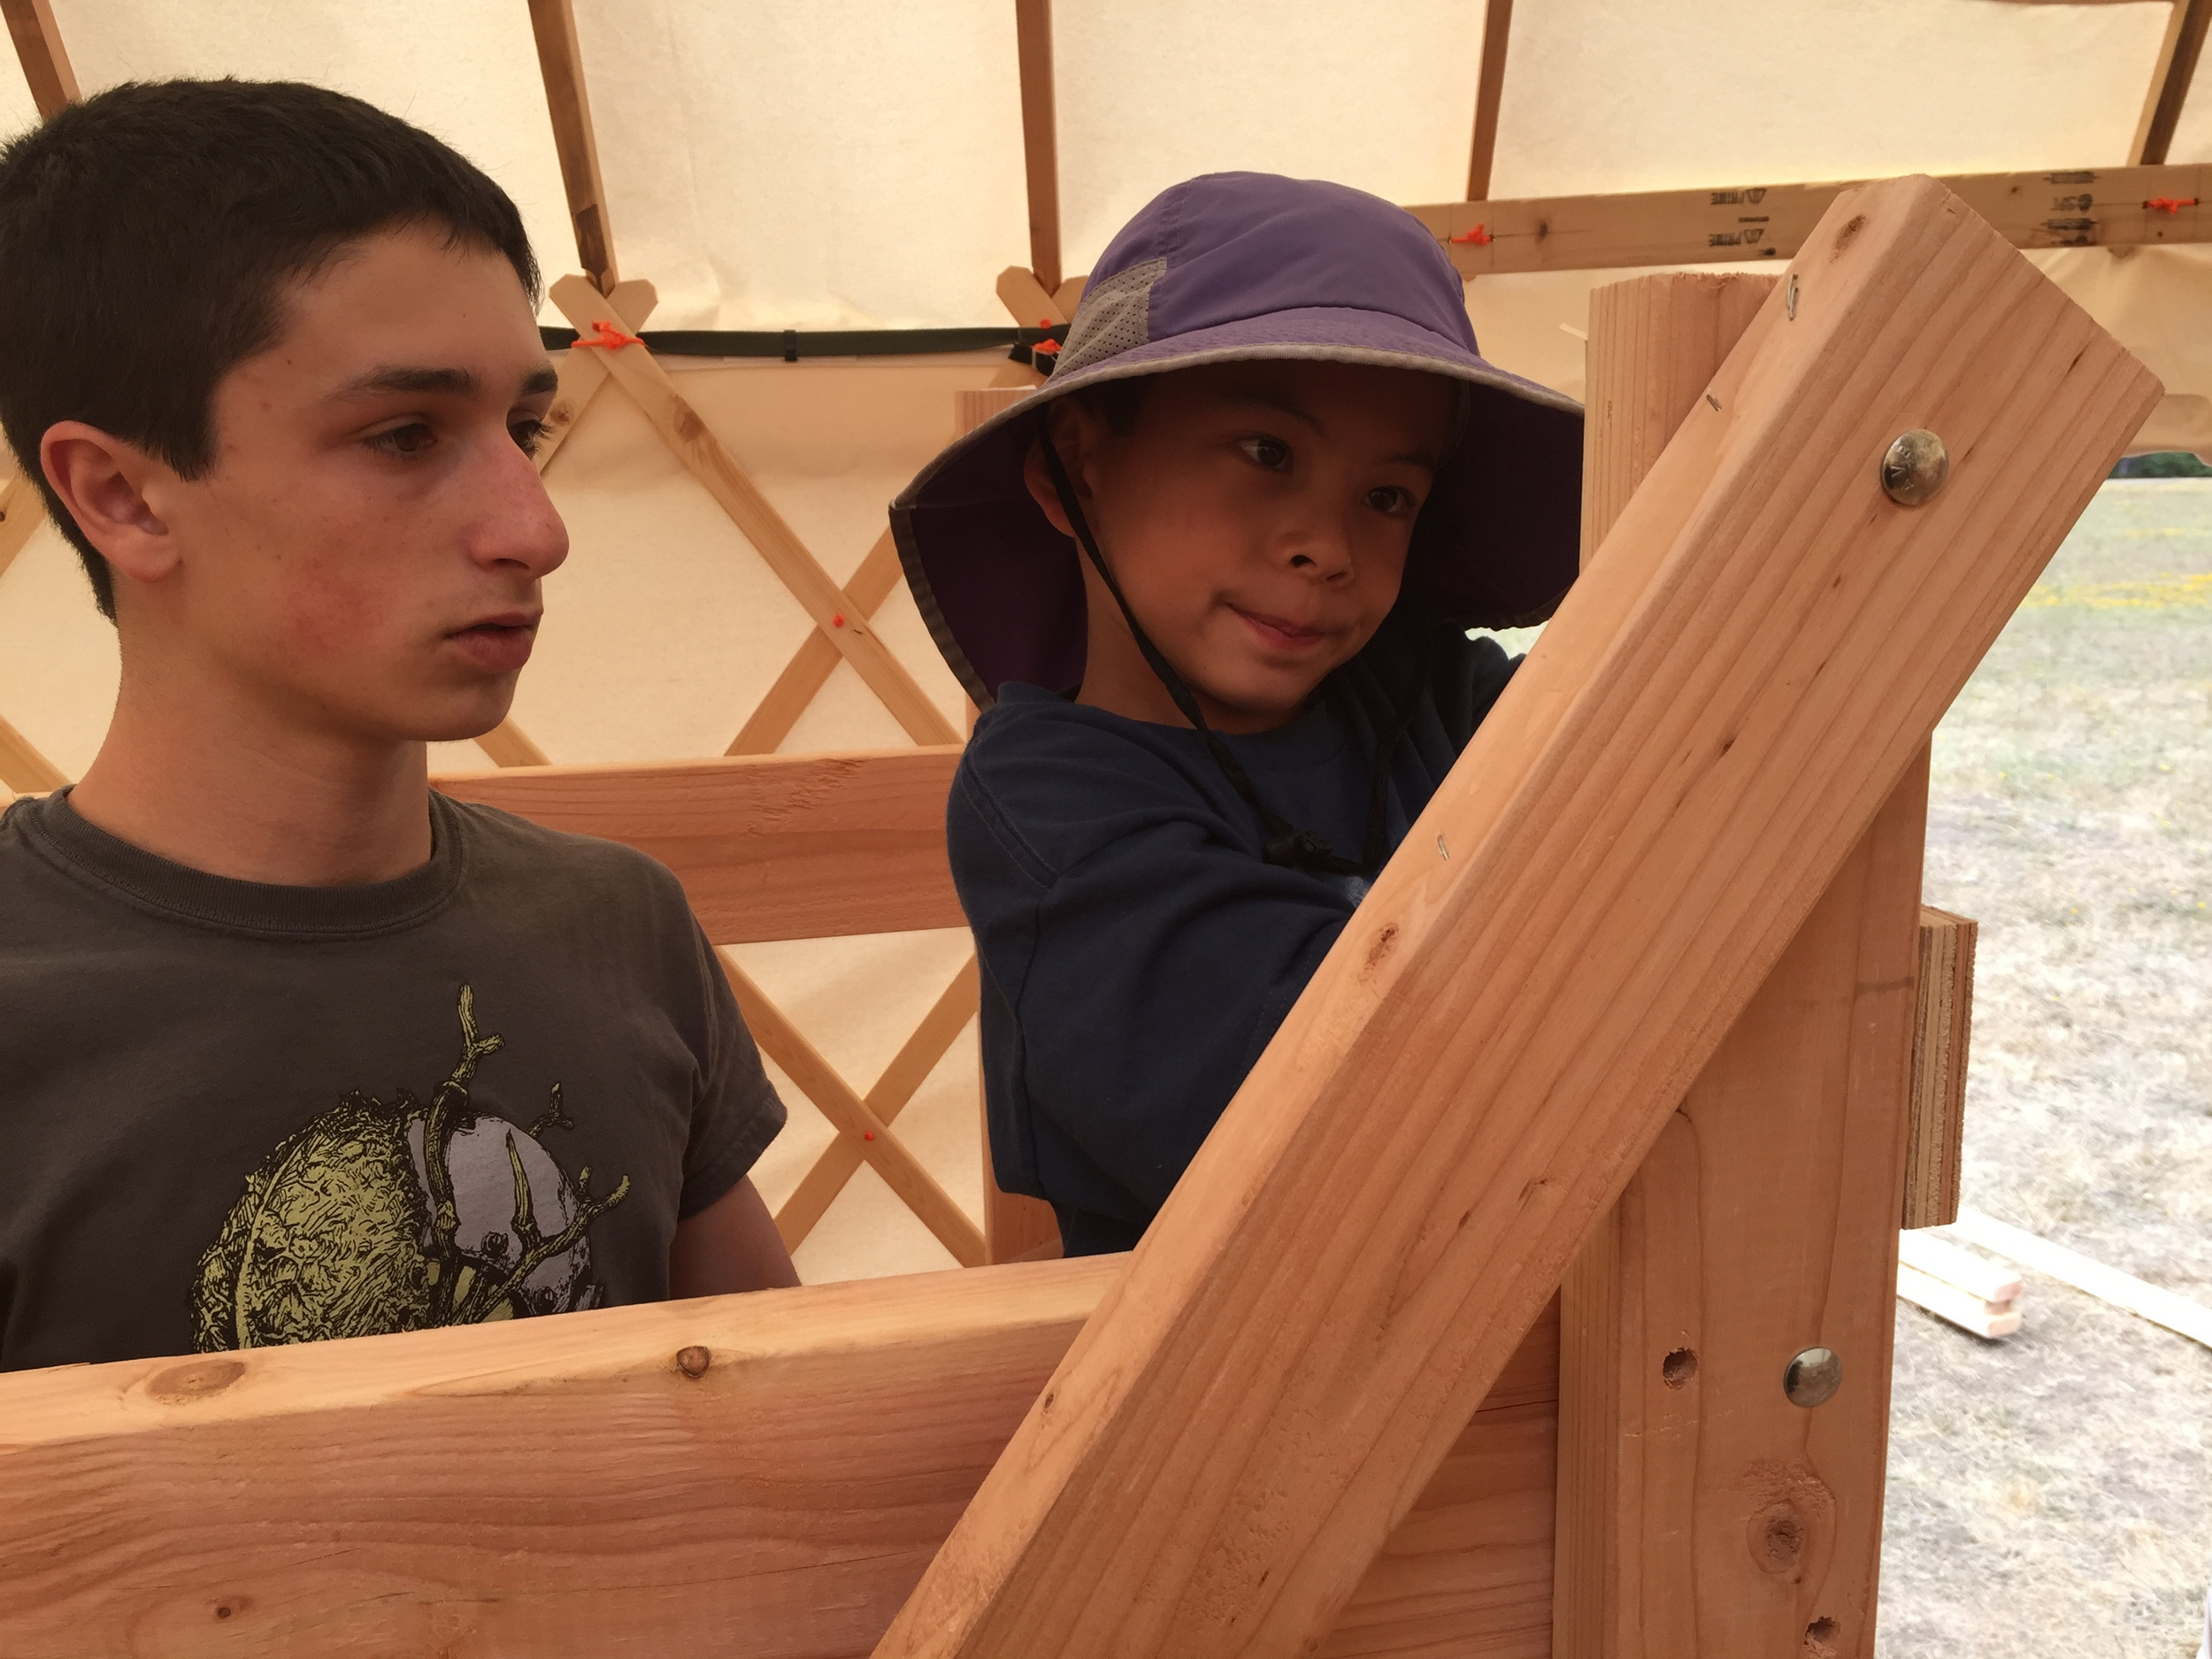 Nico works with Leo to start installing a safety bar on one of the bunks.